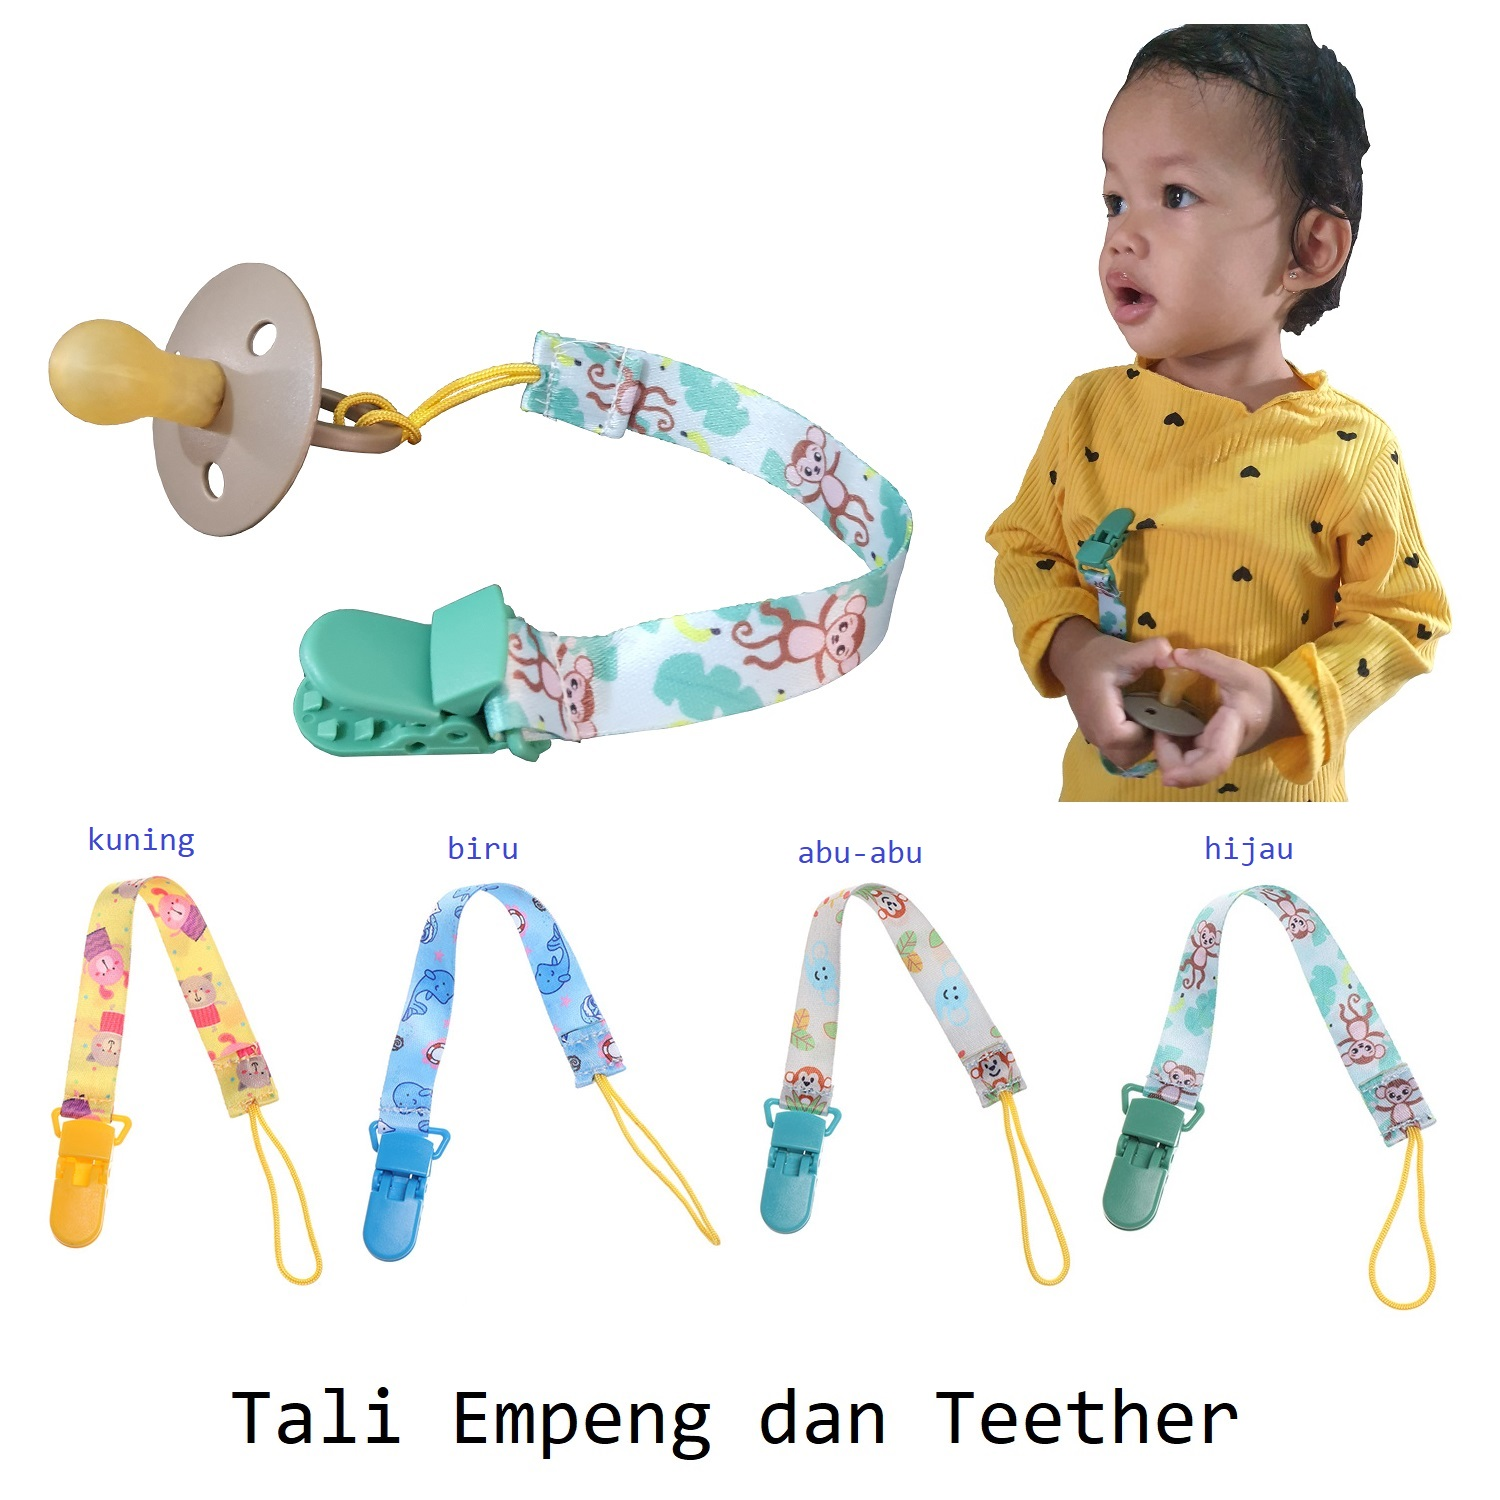 Tali Gantungan Empeng dan Teether (1a)